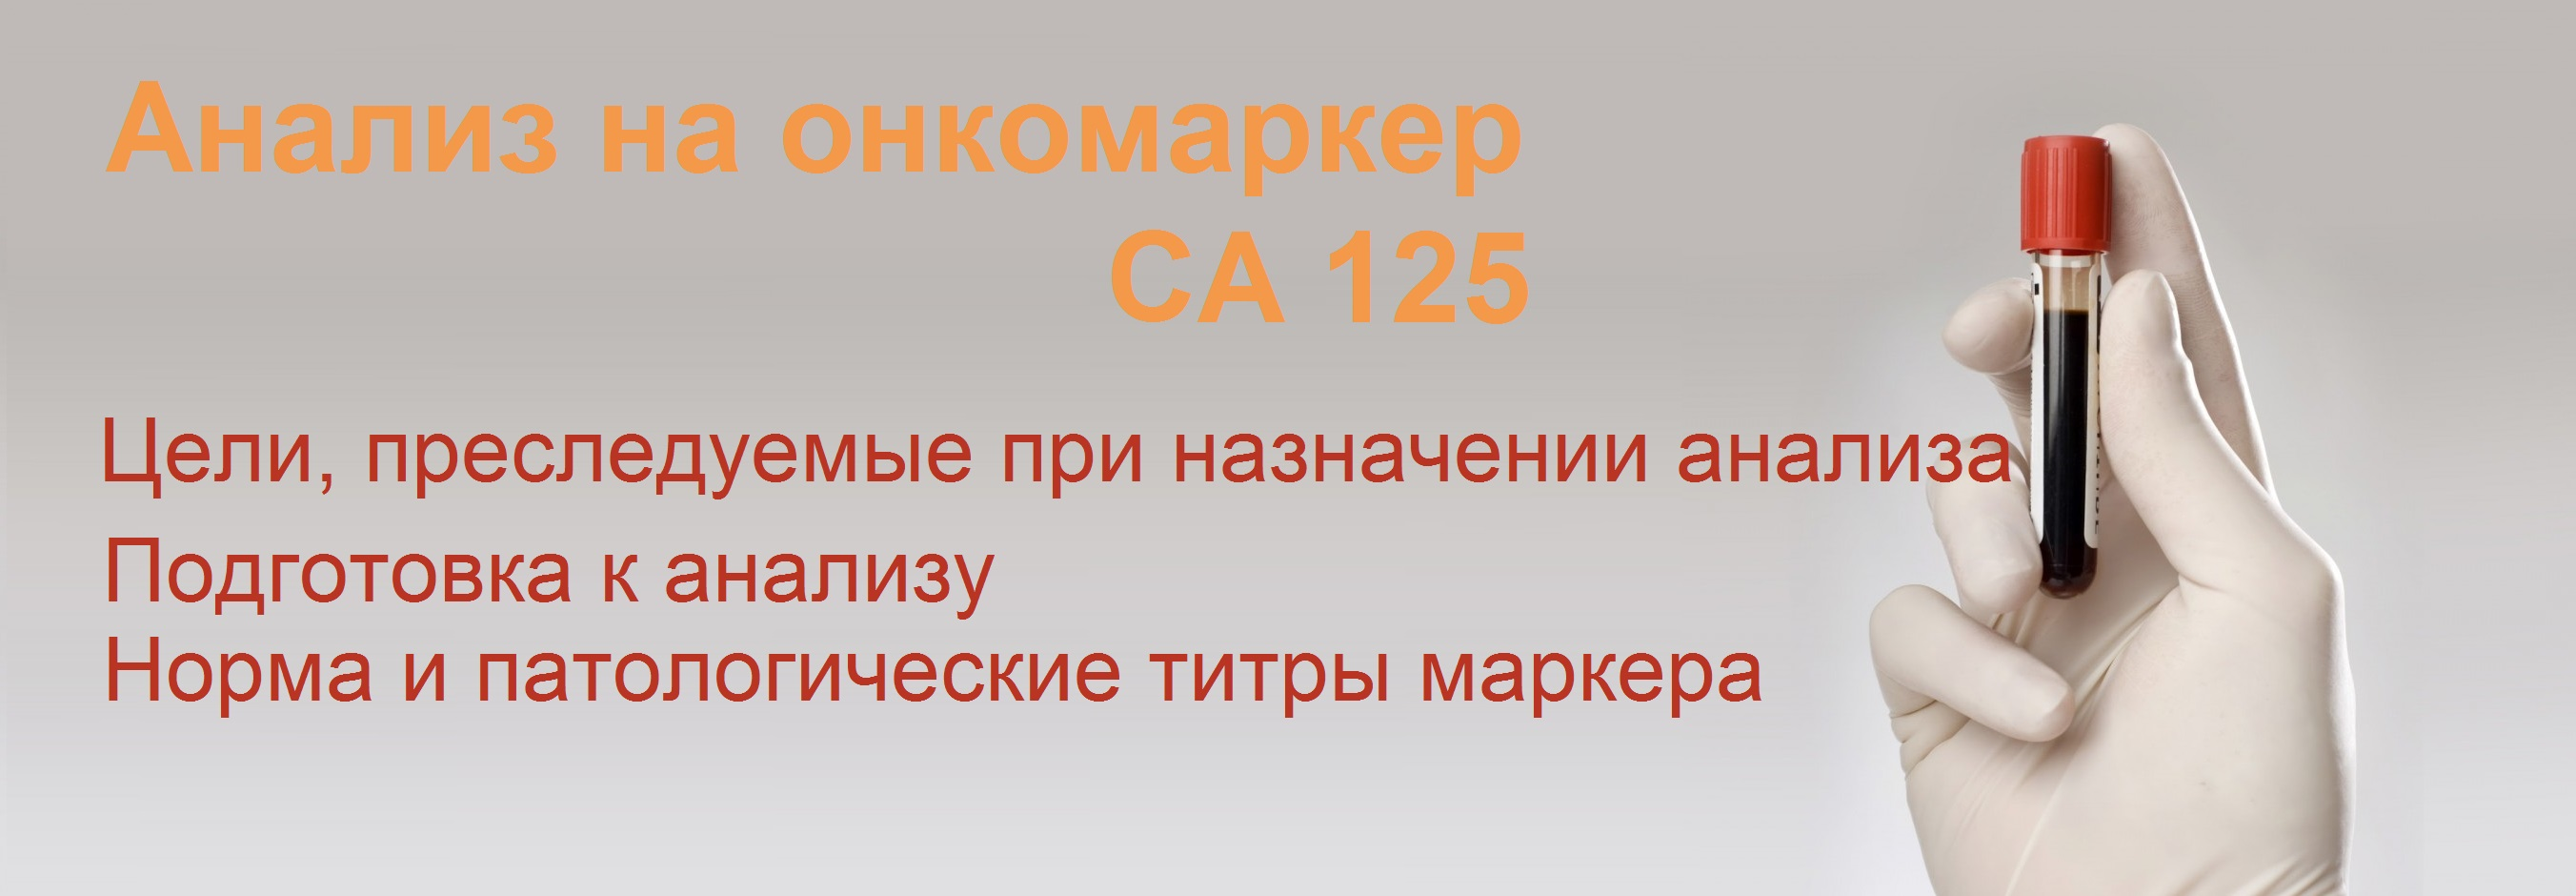 Онкомаркер CA 125 (Cancer Antigen)